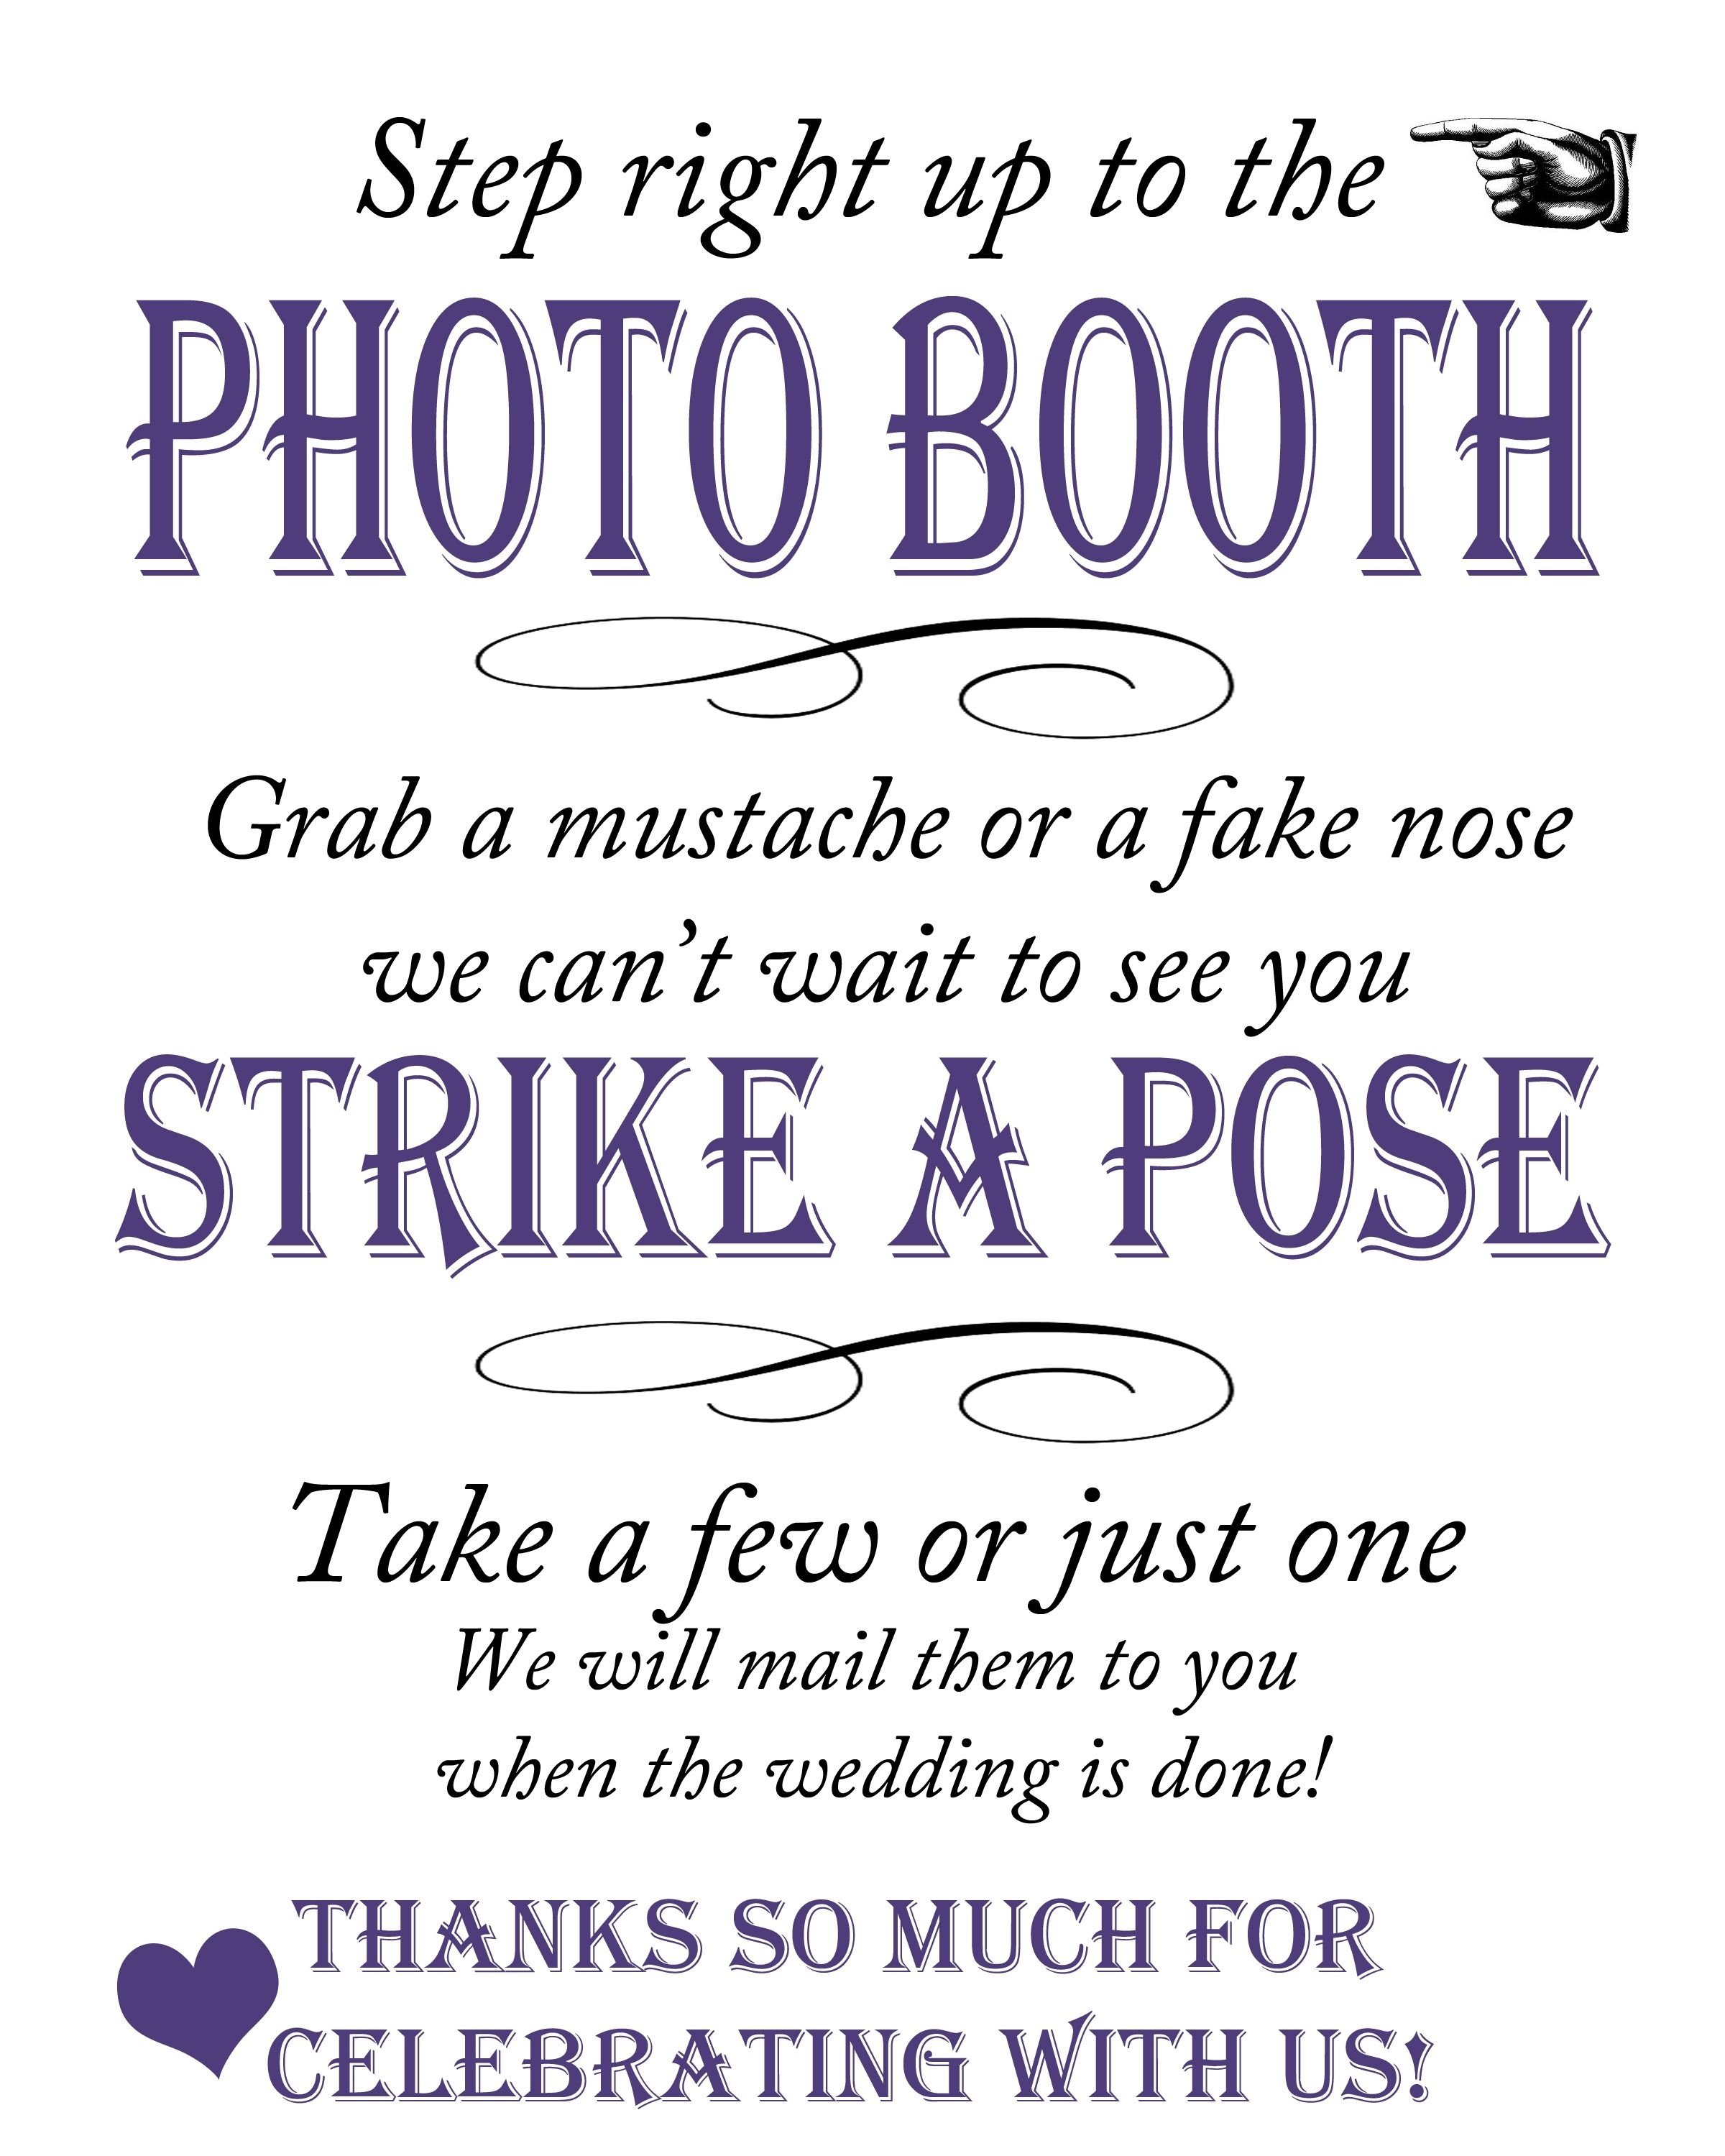 10 Fantastic What Are Good Fundraising Ideas great fundraiser idea photobooths are so popular on site